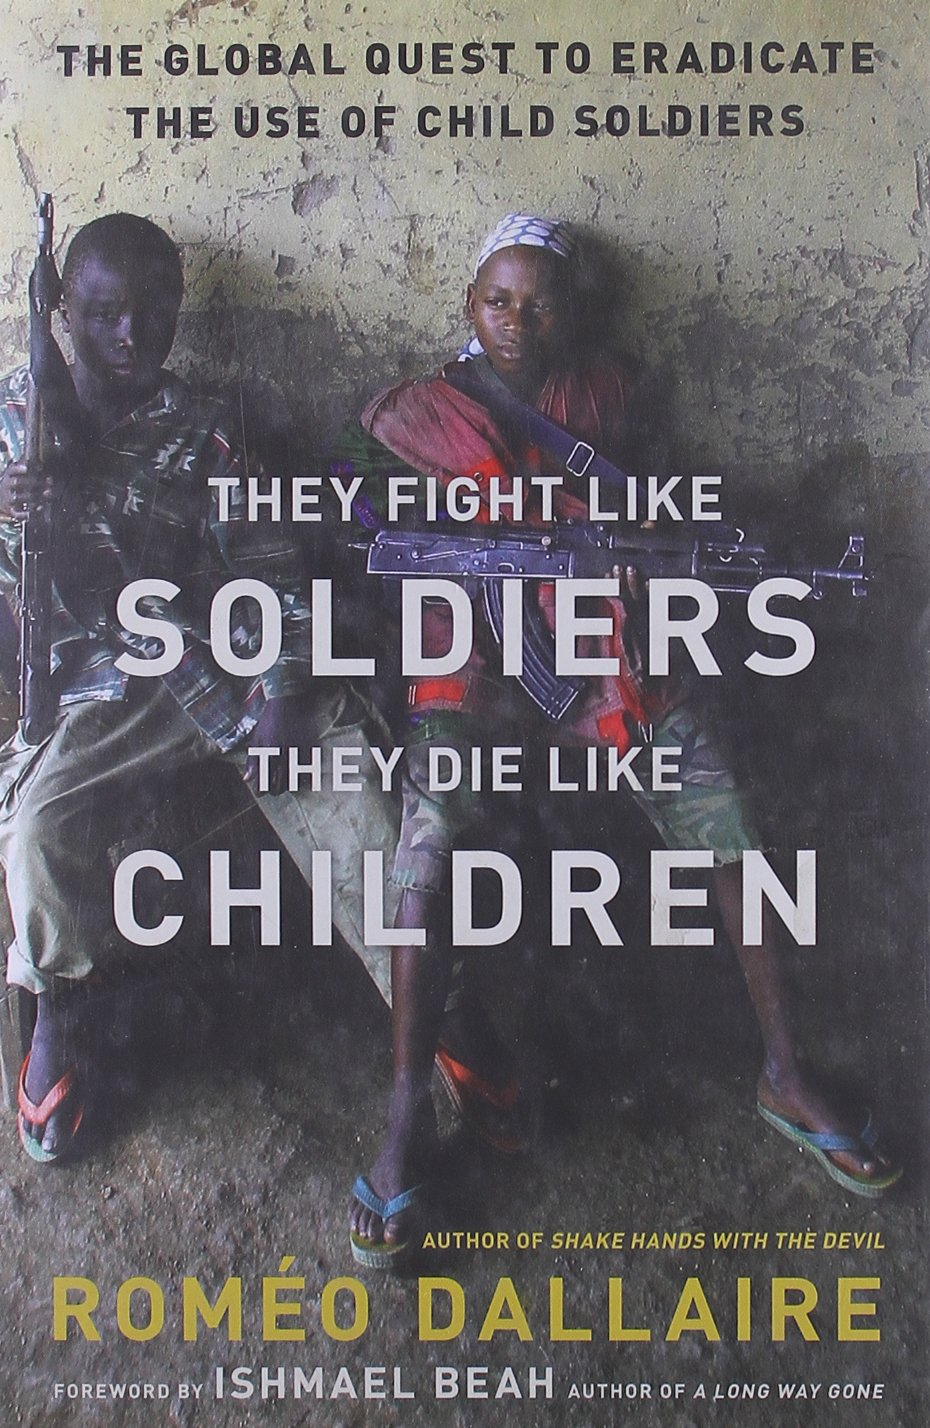 They fight like soldiers they die like children the global quest they die like children the global quest to eradicate the use of child soldiers romo dallaire ishmael beah 9780802779564 amazon books fandeluxe Gallery